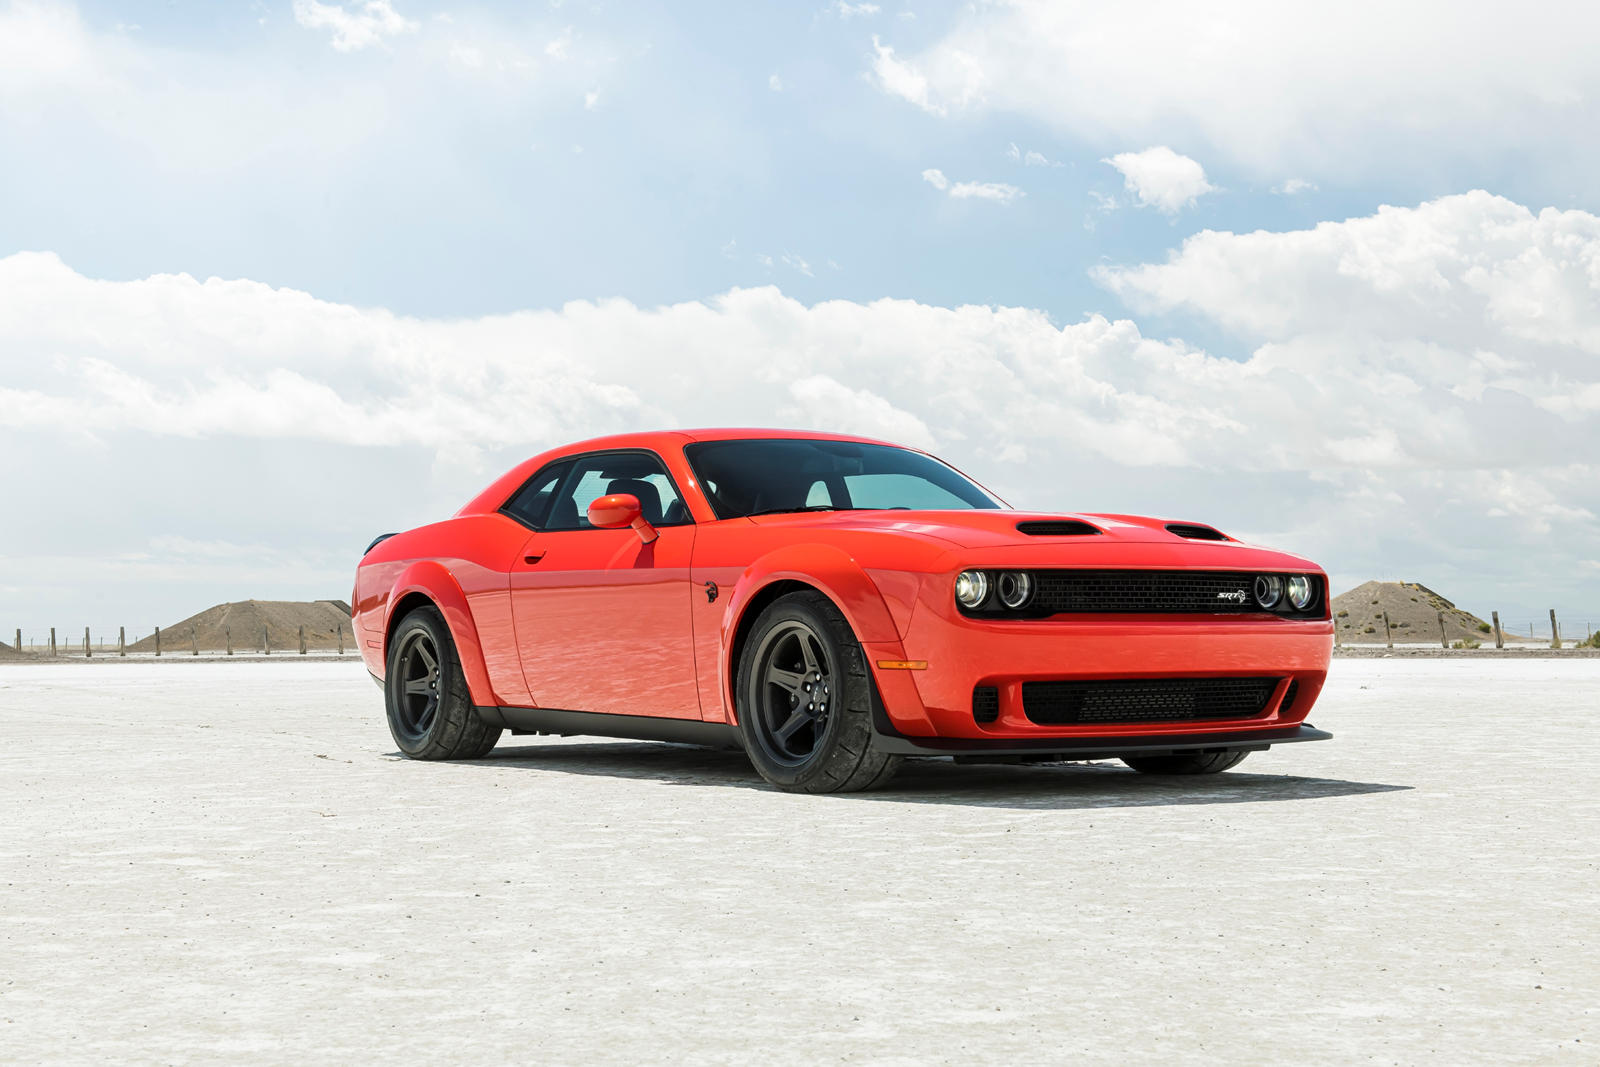 2020 Dodge Challenger SRT Super Stock: Review, Trims, Specs, Price, New Interior Features, Exterior Design, and Specifications